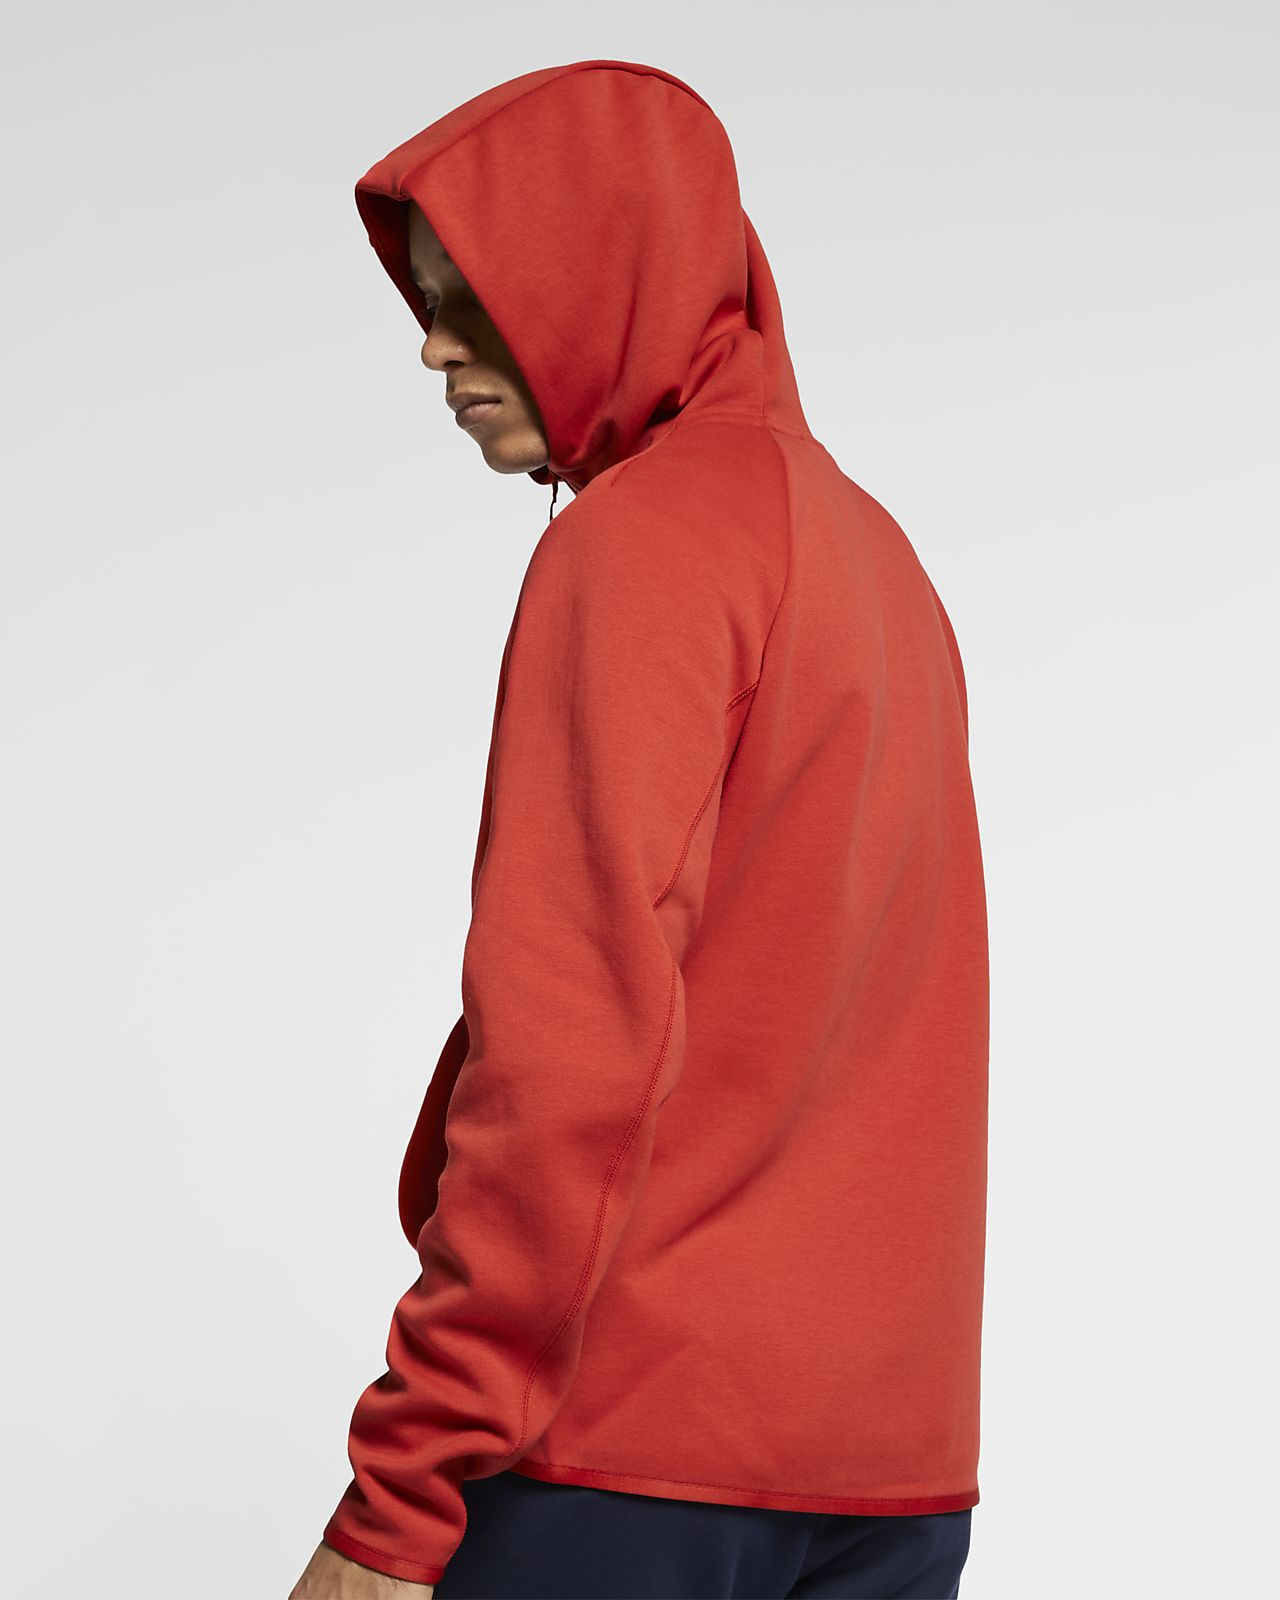 01ece41de0b Nike Sportswear Tech Fleece Men s Full-Zip Hoodie. Nike.com